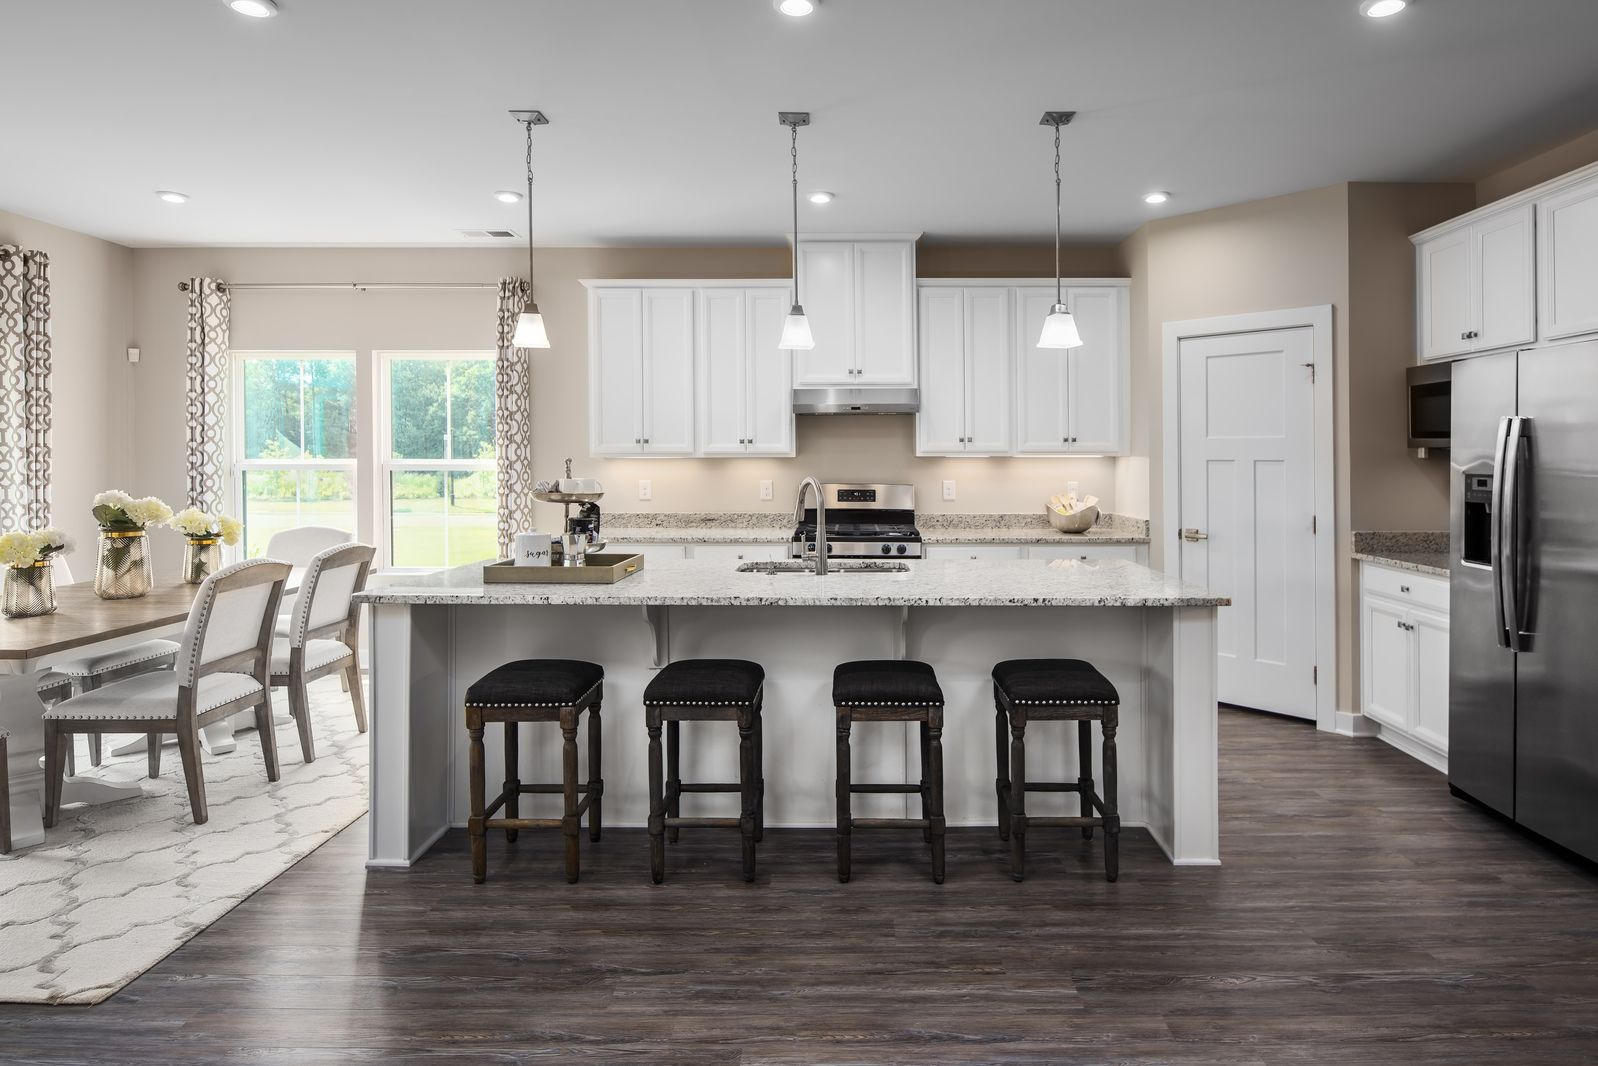 Kitchen featured in the Lehigh By Ryan Homes in York, PA